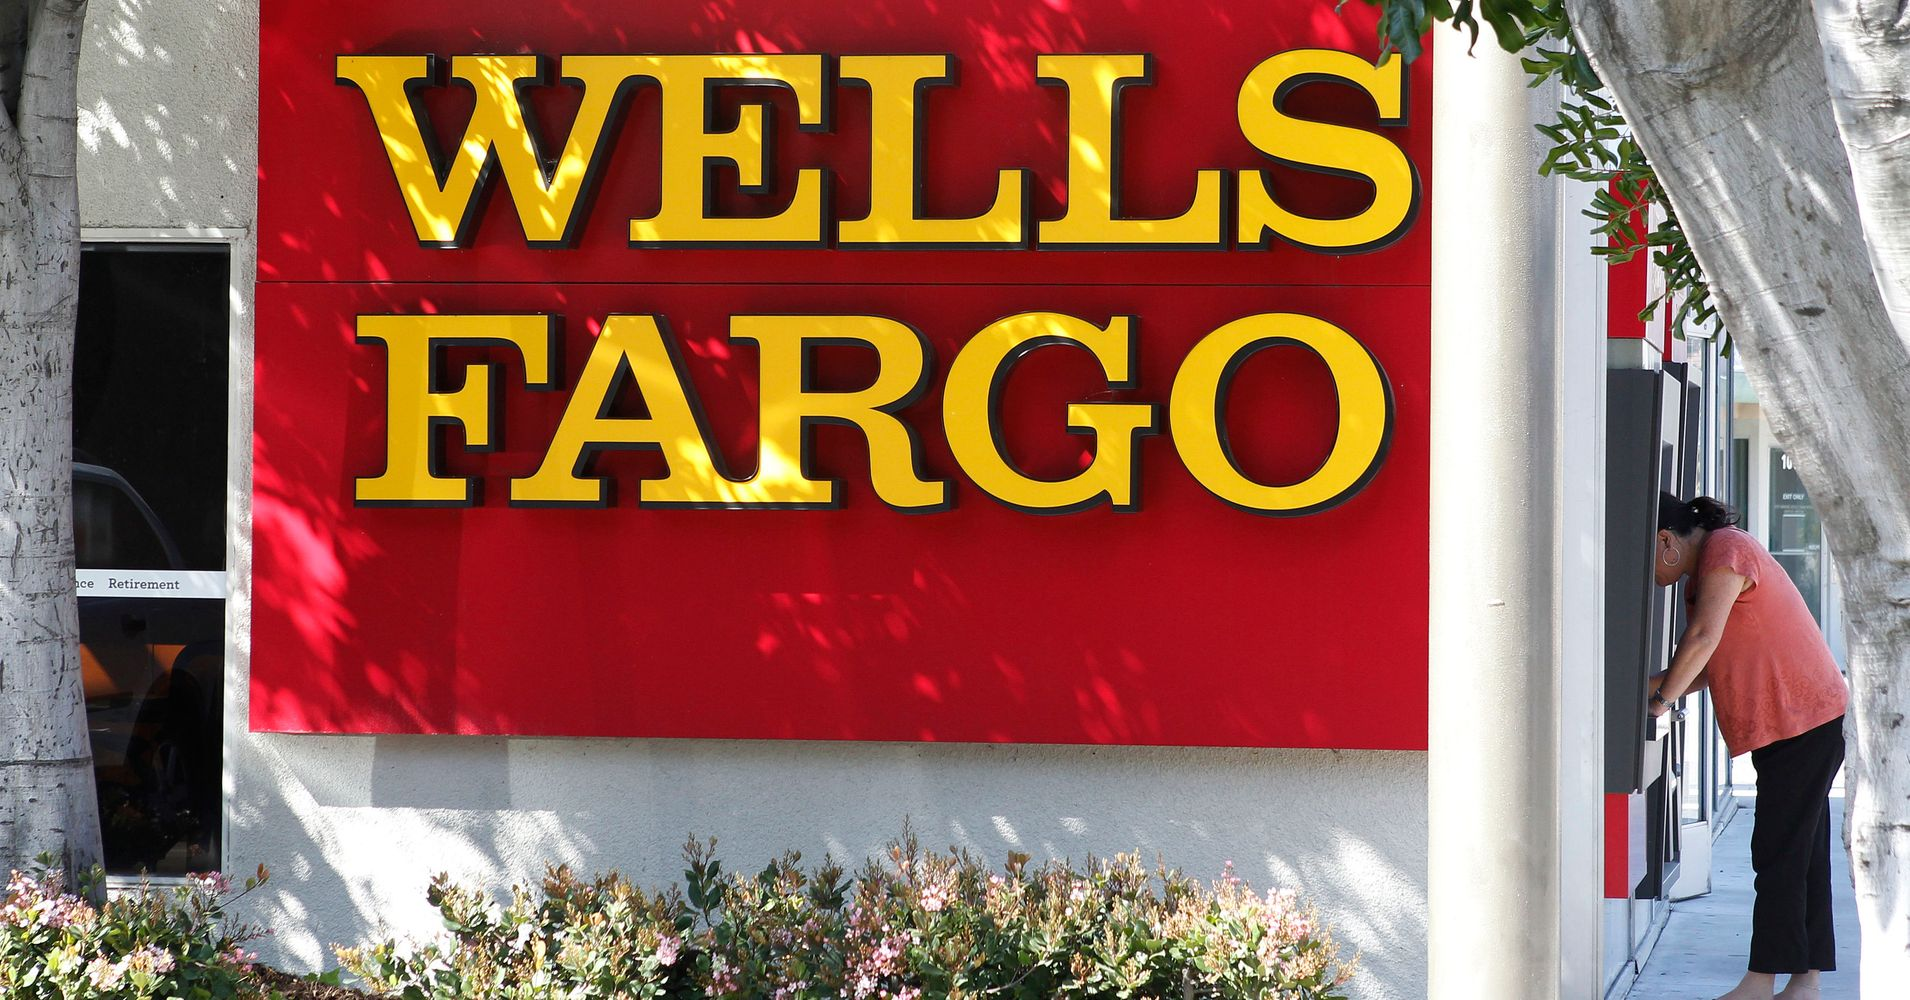 Report Wells Fargo Bankers Overcharged Hundreds In Latest Scandal